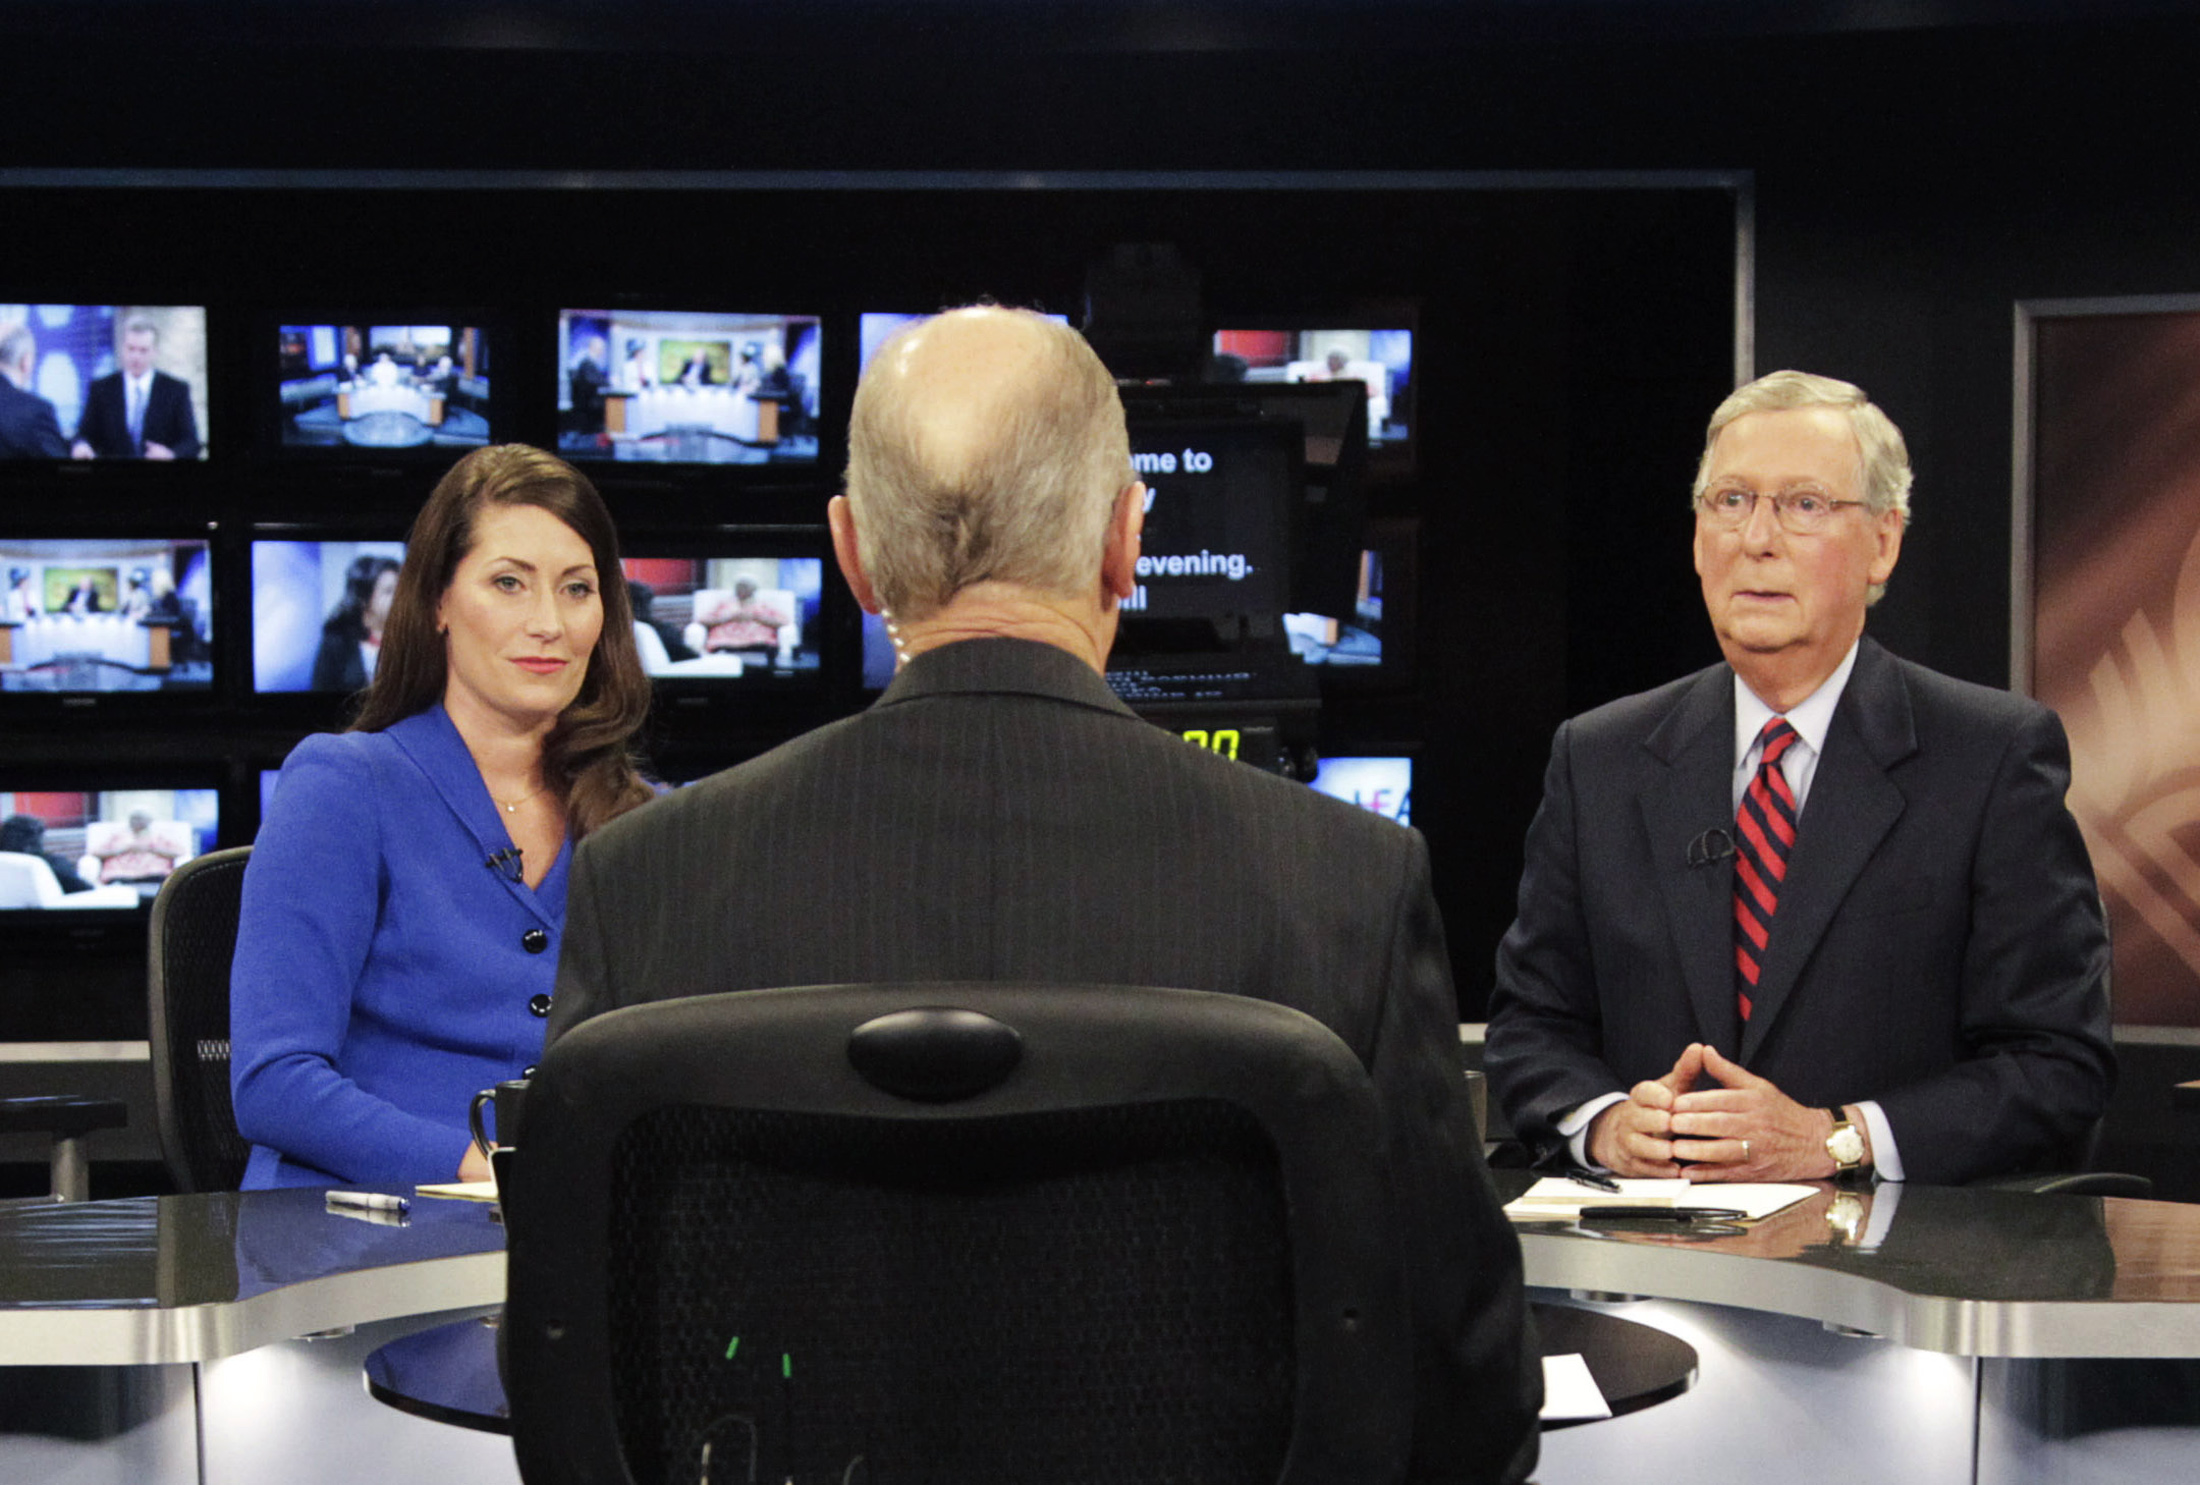 Republican U.S. Senate Minority Leader McConnell and Democratic U.S. Senate candidate Grimes prepare for their debate at the Kentucky Education Television network headquarters in Lexington